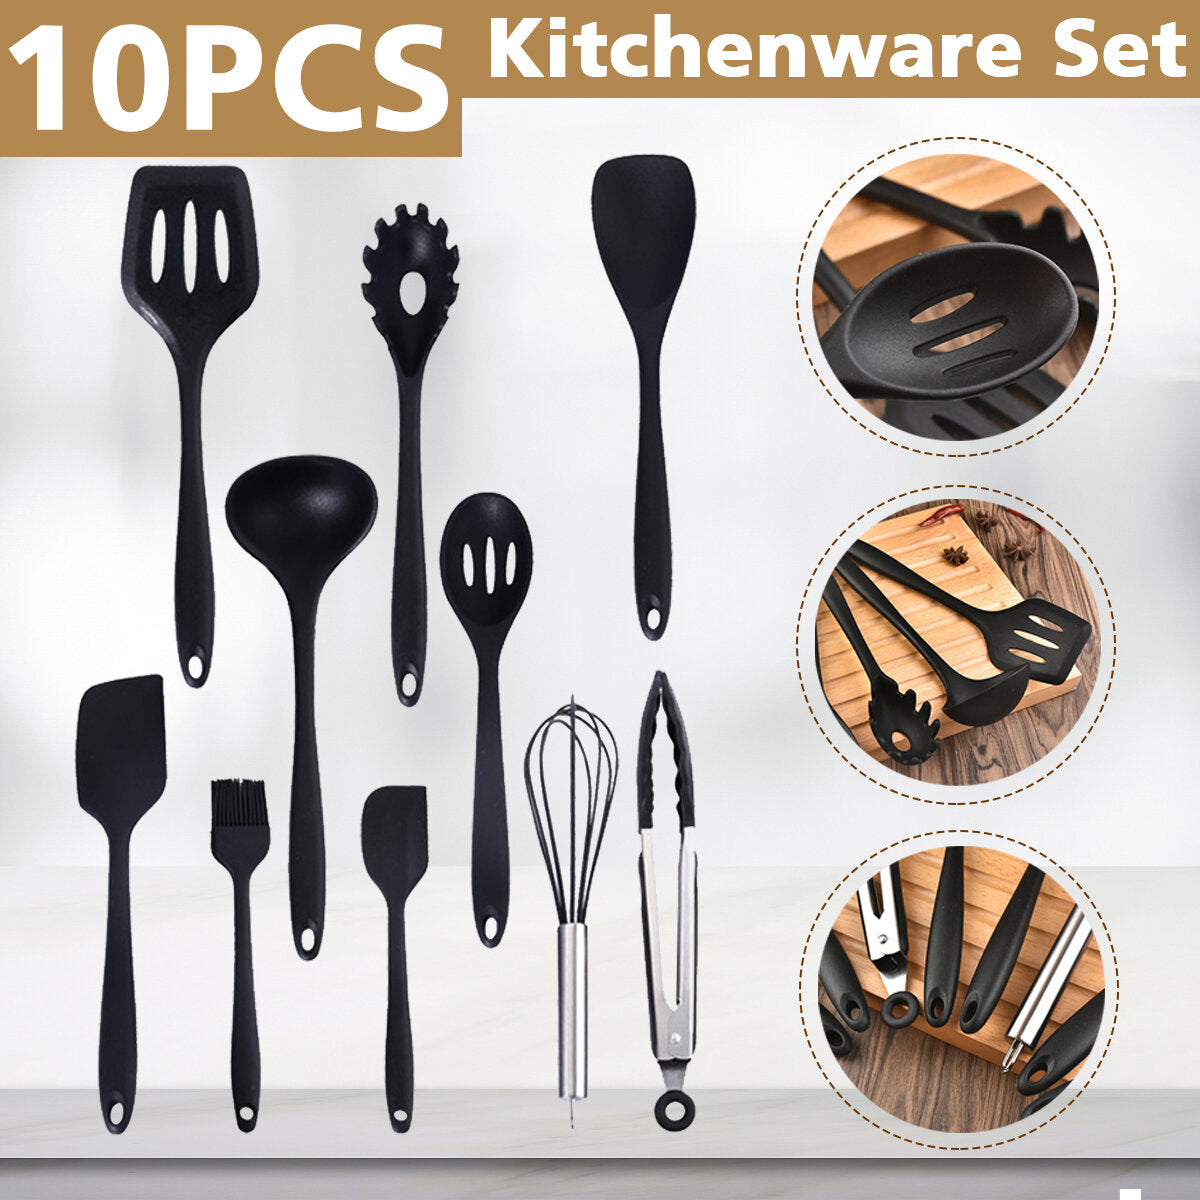 10PCS Silicone Non-Stick Cookware Pan Spoon Utensils Kitchenware Set Tableware Cooking Tools